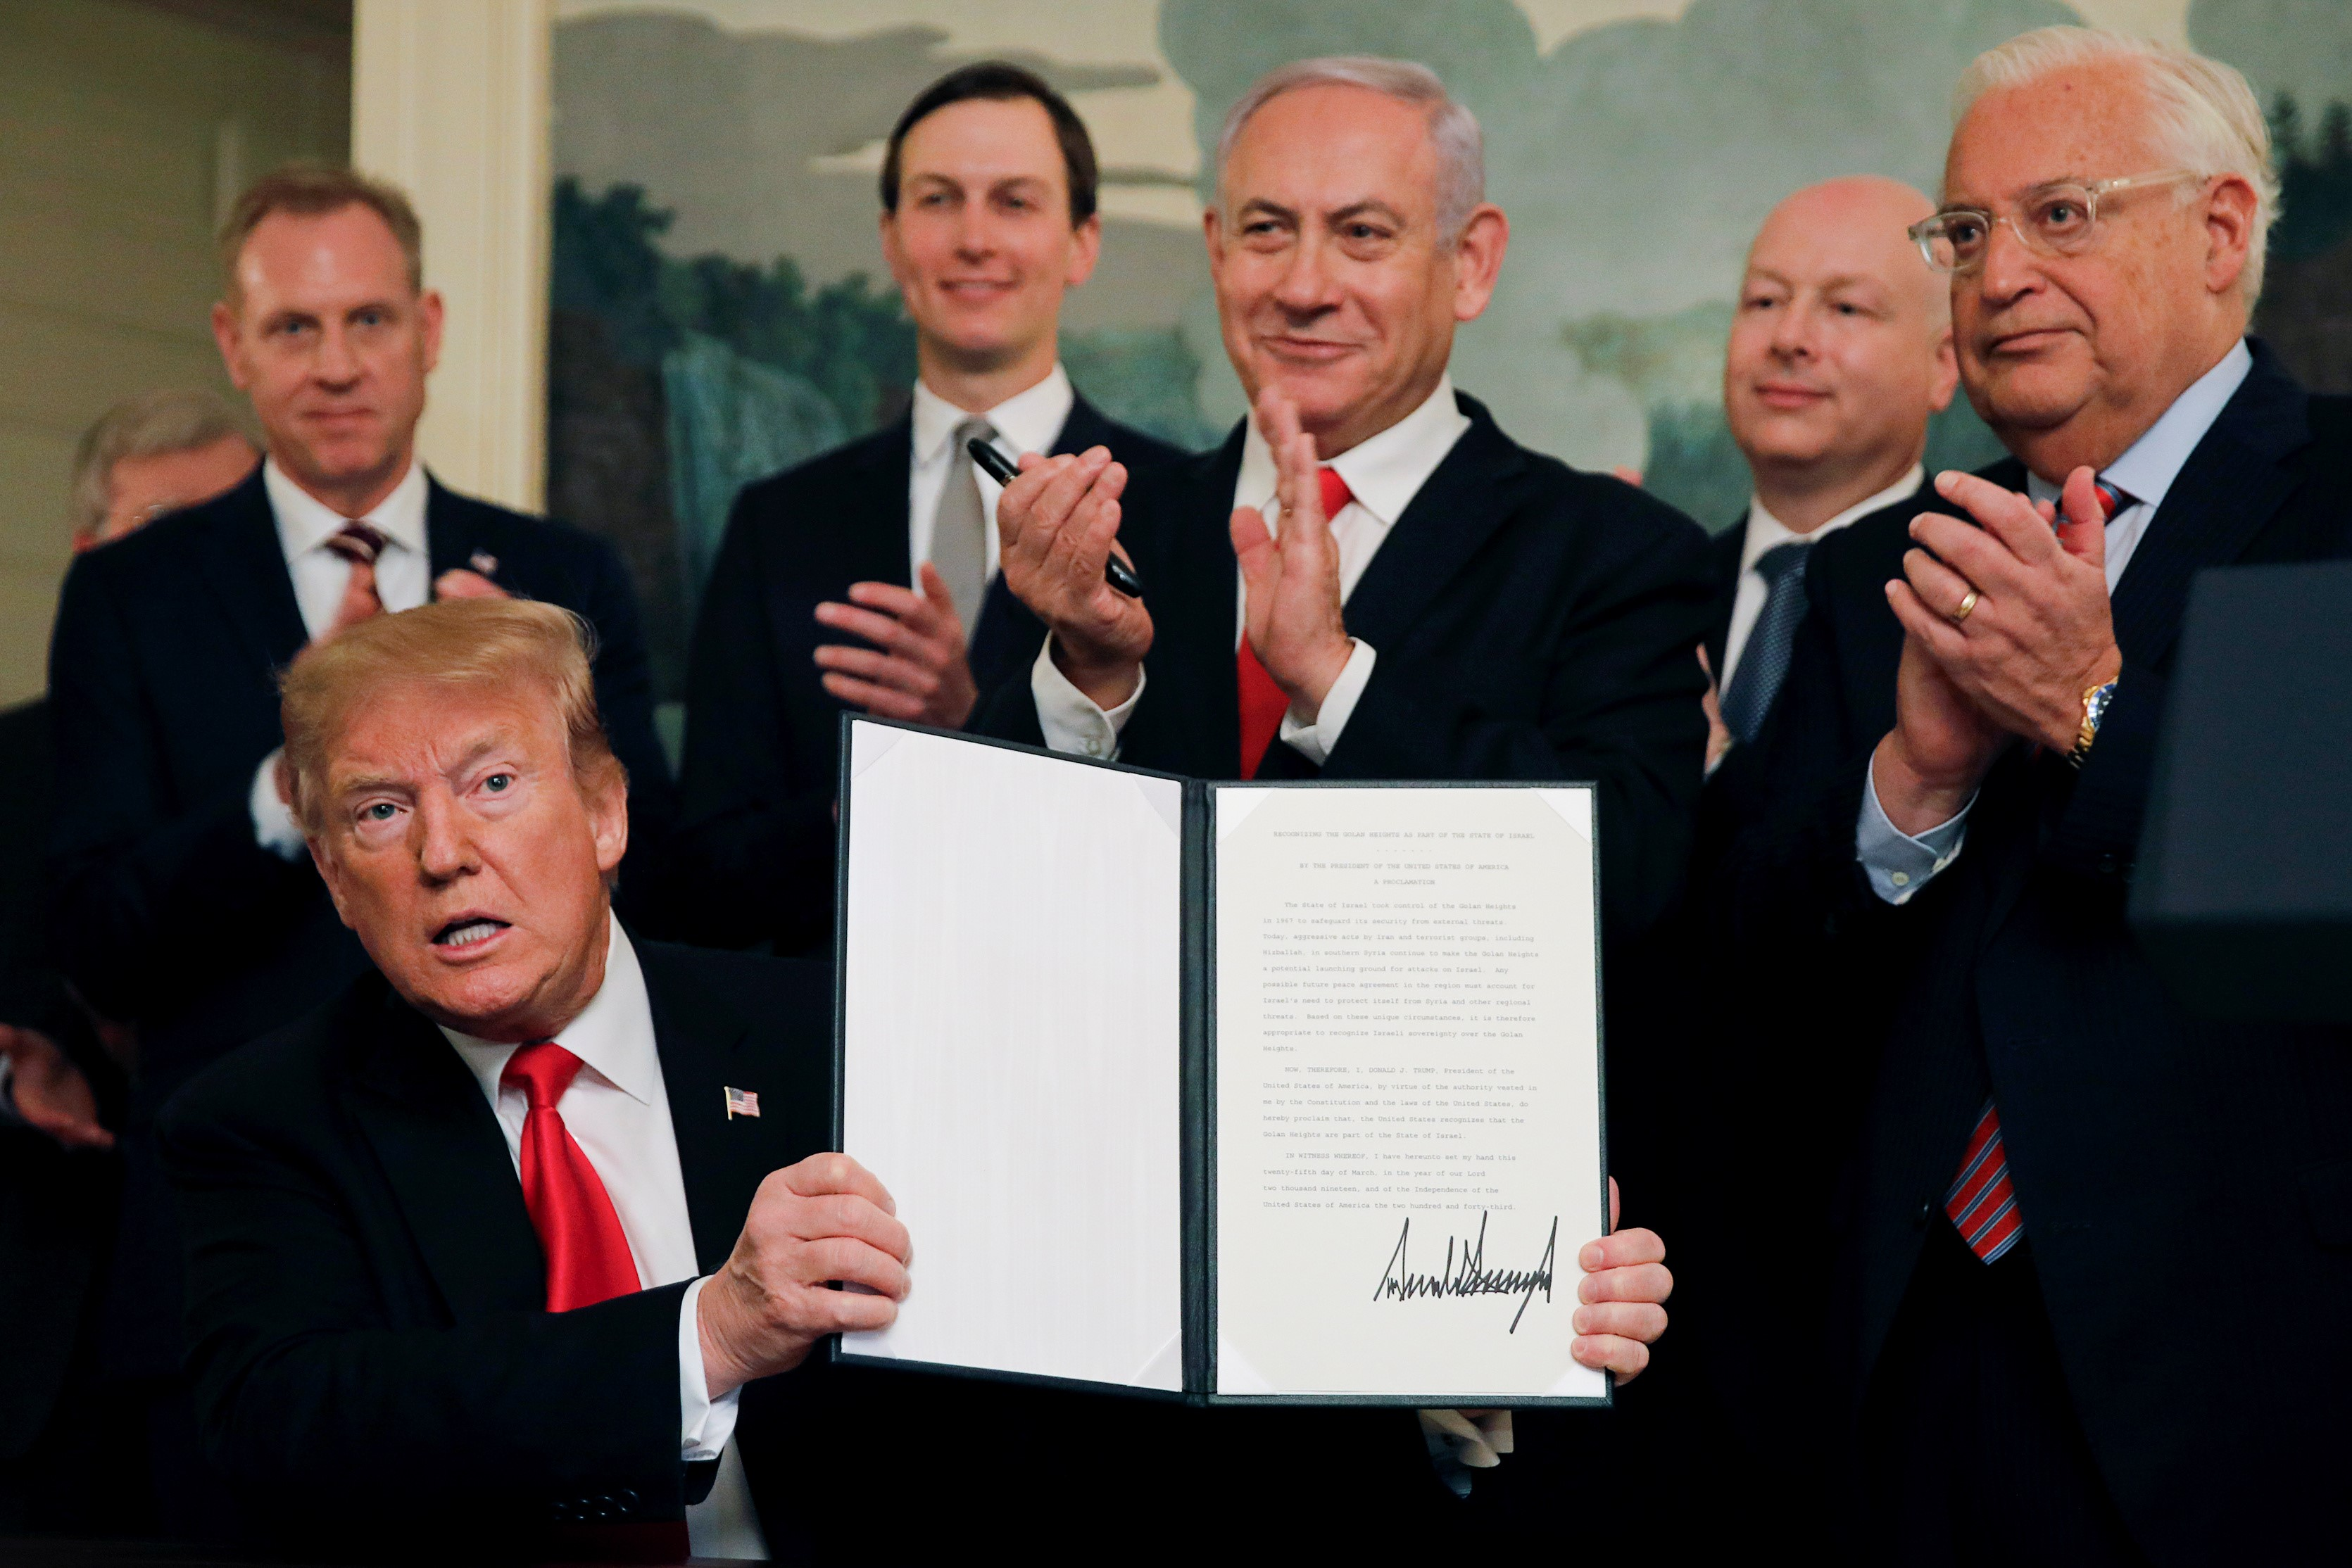 The 'deal of the century': US blessing for Israel's land theft and ghettoisation of the Palestinians